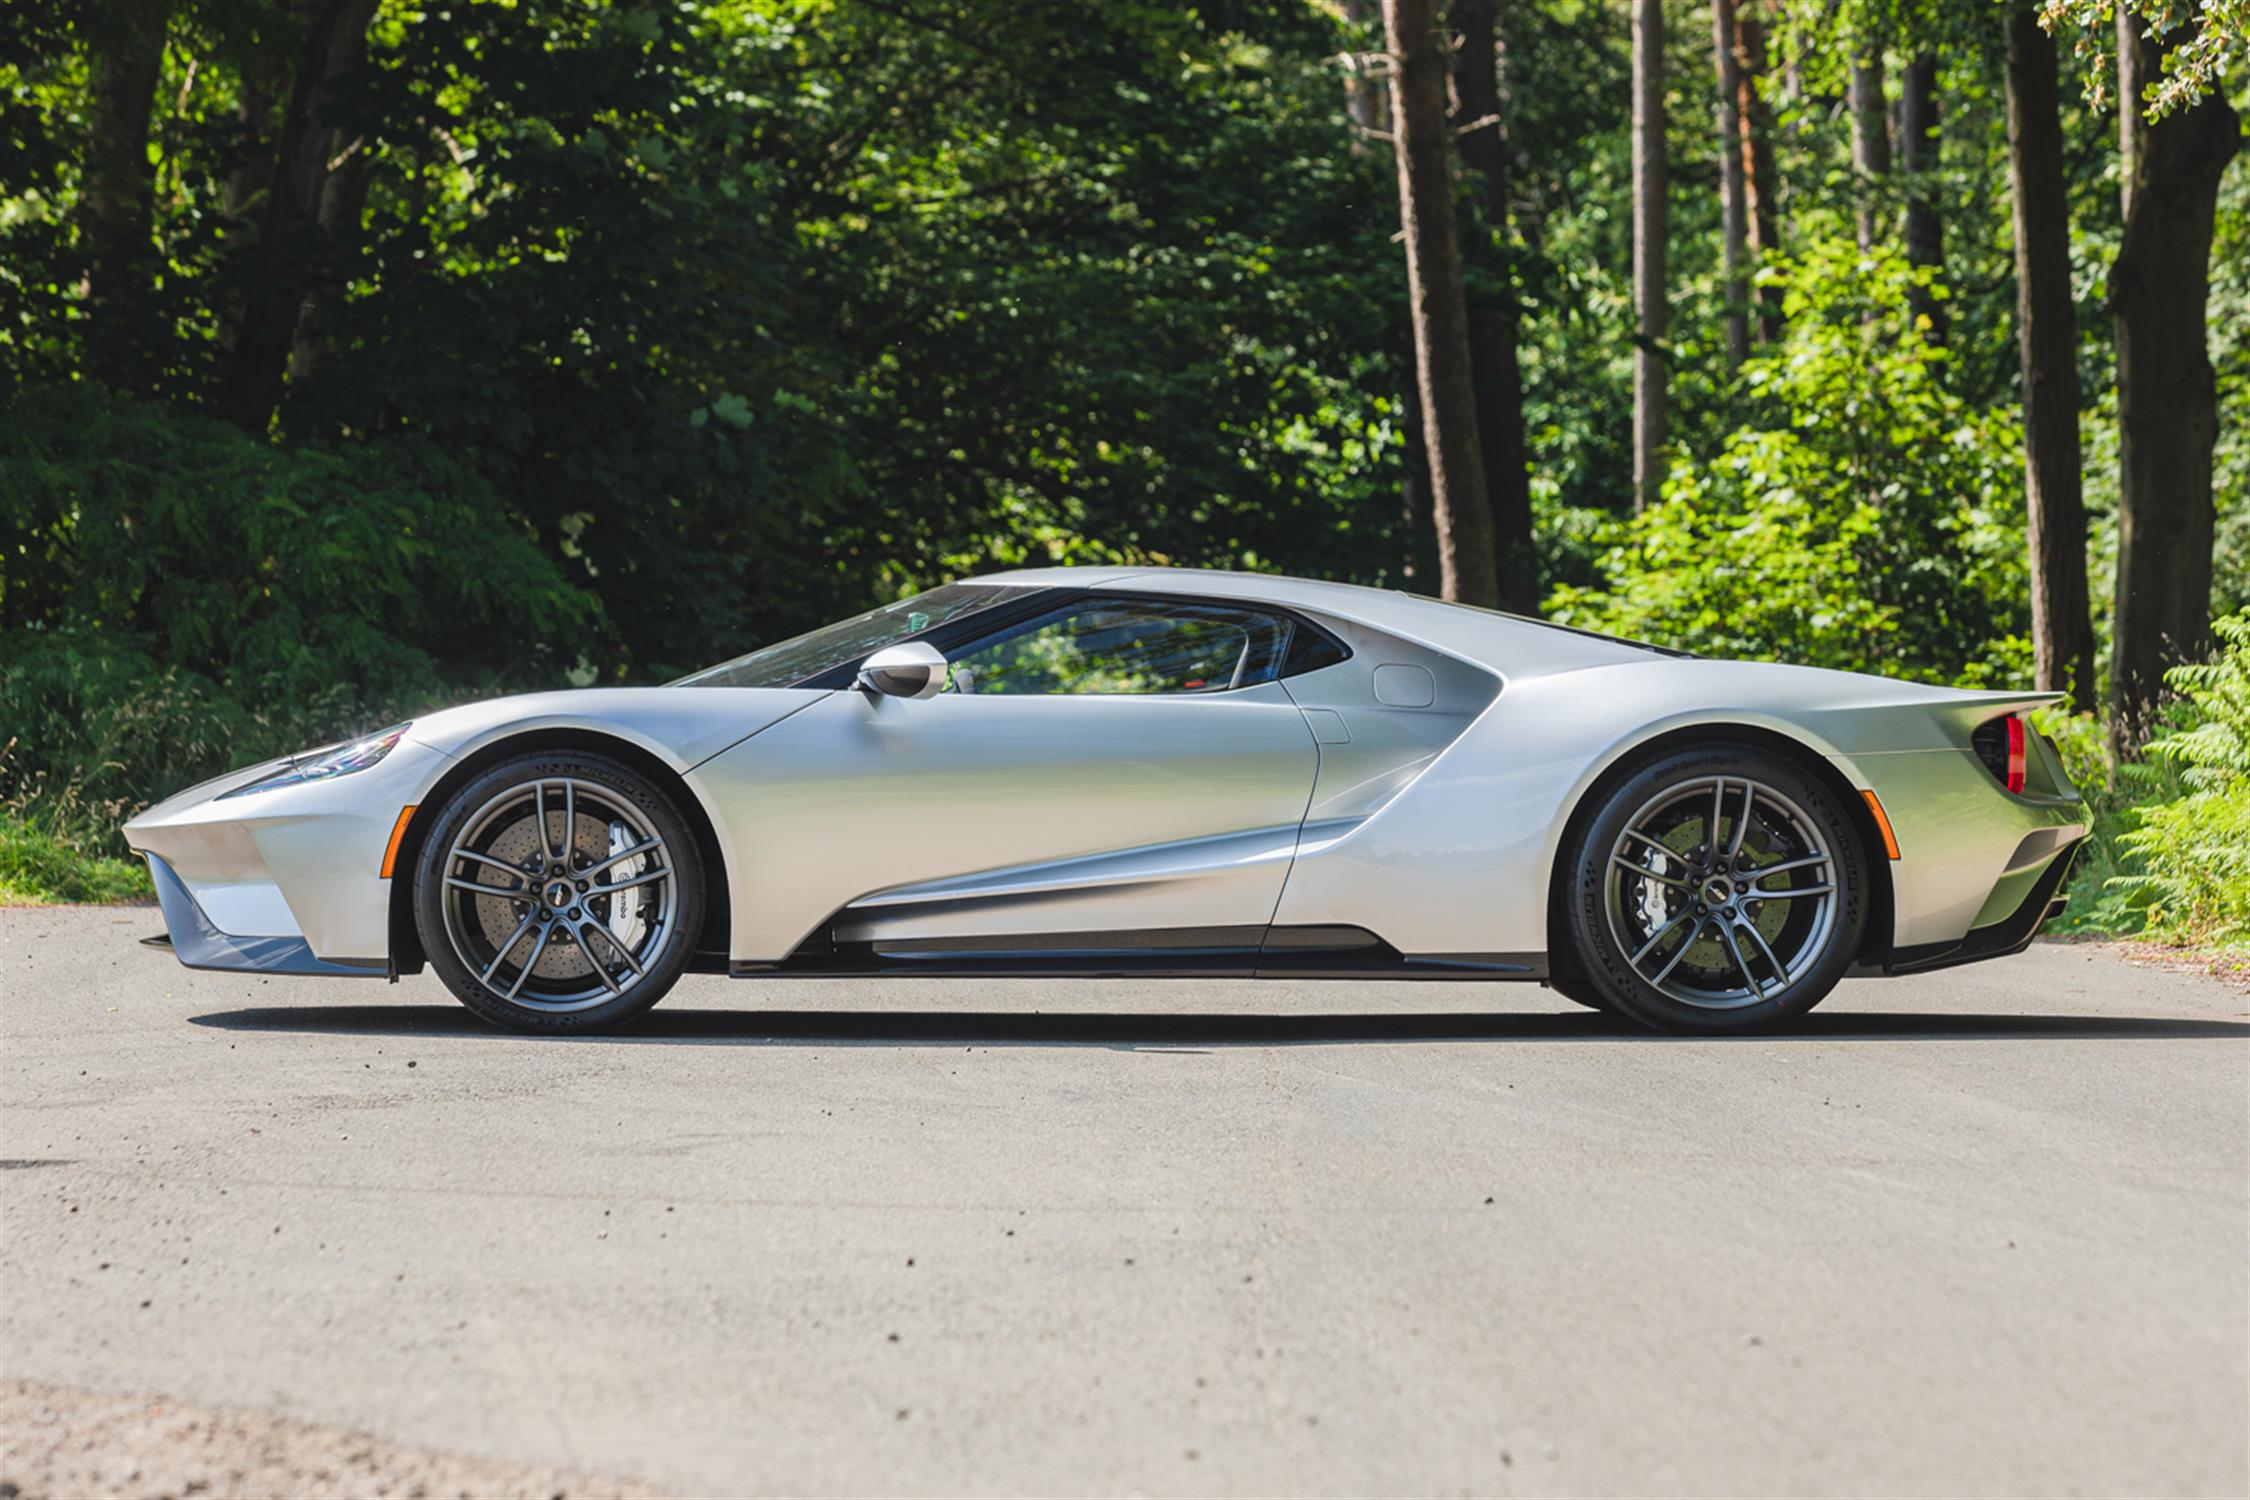 2018 Ford GT - Image 14 of 20